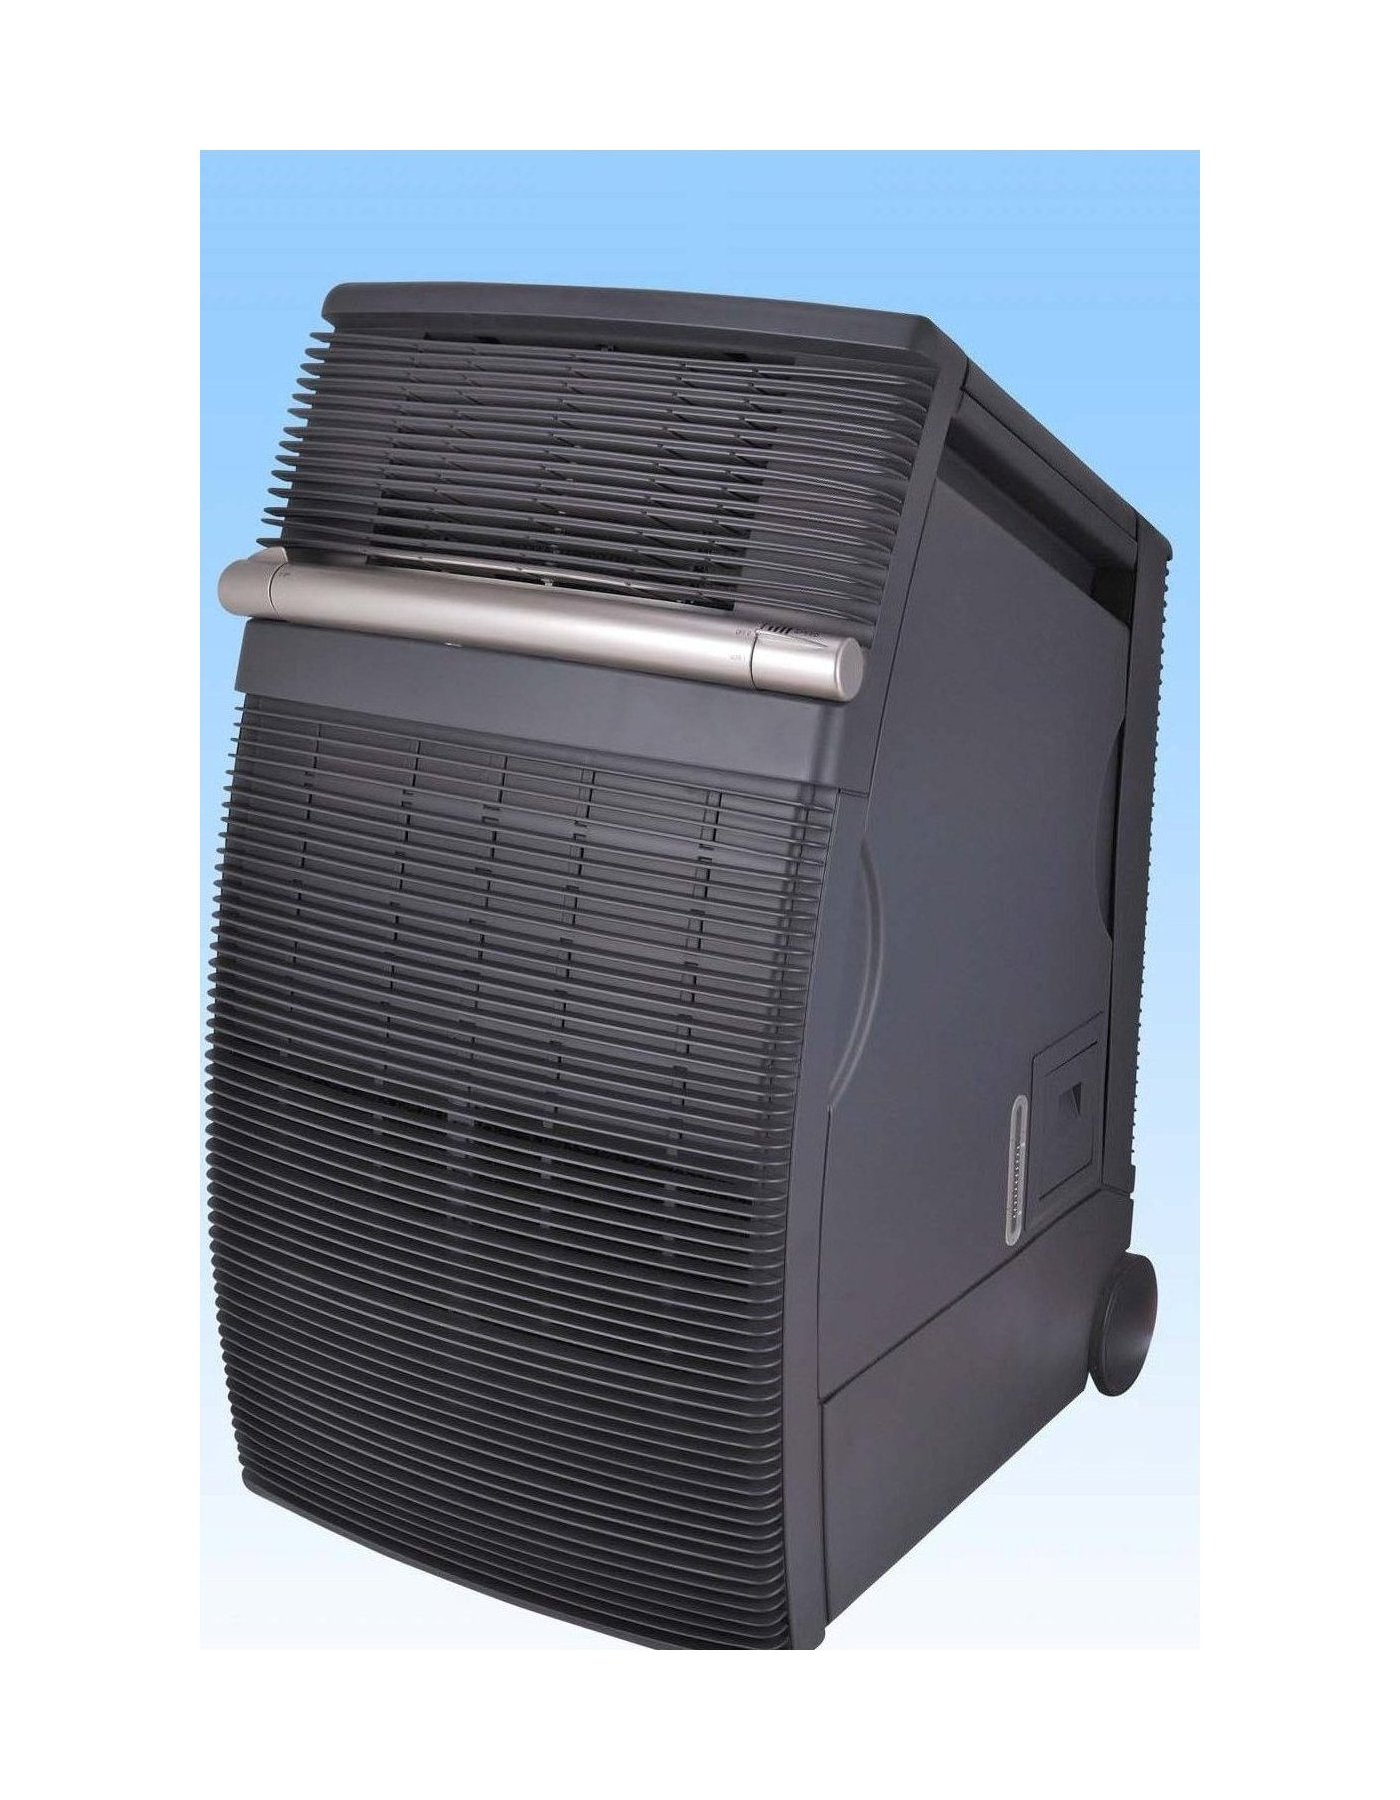 #056BC6 Rapid P12 IPX4 Rated Outdoor / Indoor 45 L Evaporative Air  Highest Rated 13326 Outdoor Portable Air Conditioner img with 1400x1800 px on helpvideos.info - Air Conditioners, Air Coolers and more